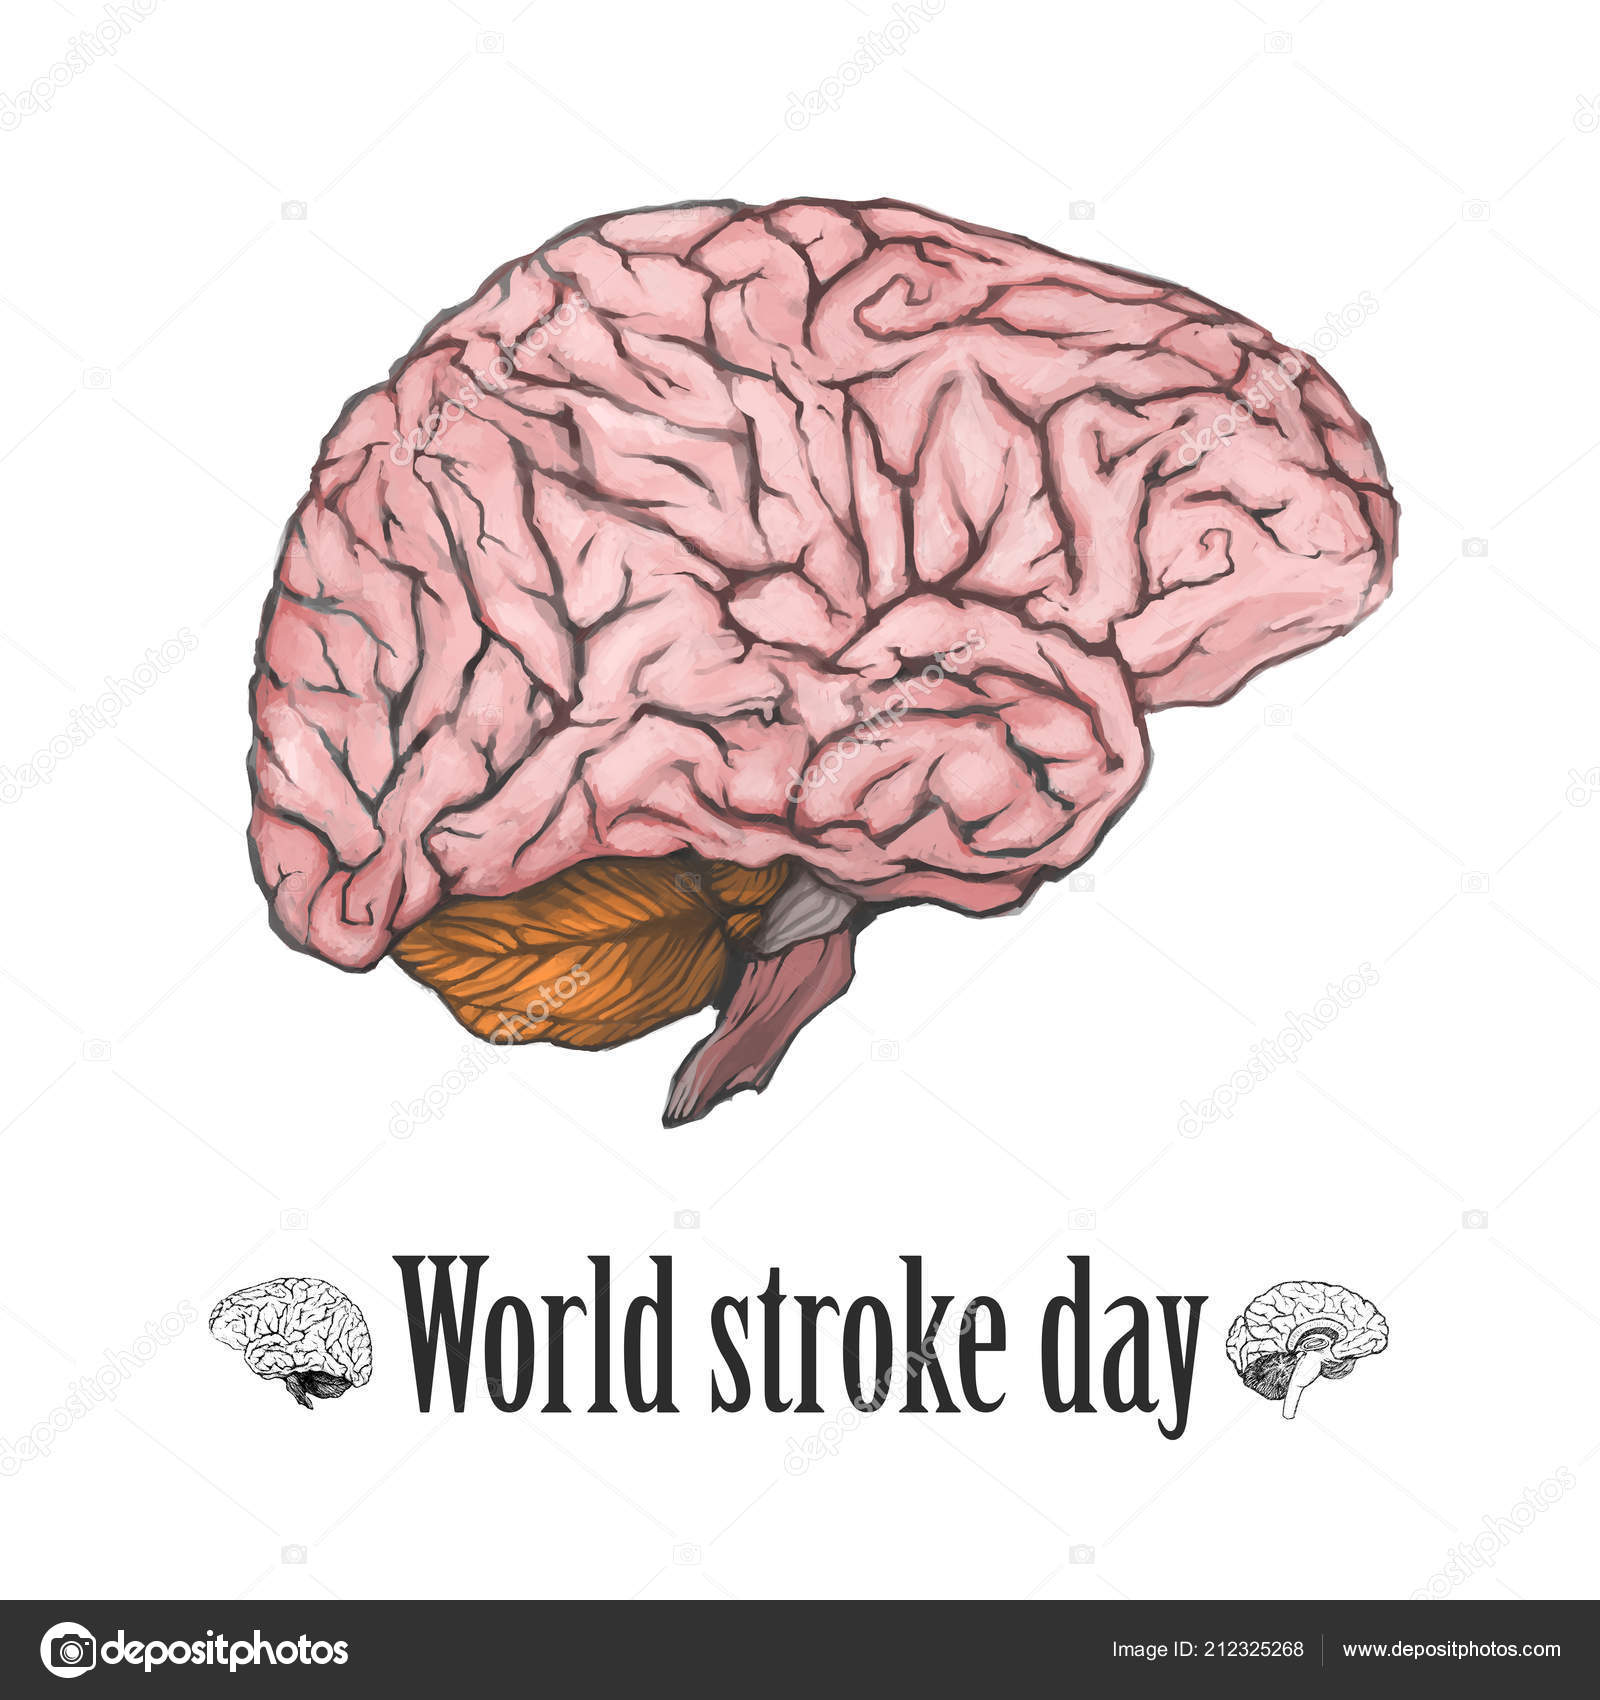 hight resolution of  world stroke day illustration digital painted brain isolated on a white background realistic drawing the part of the human body stock image